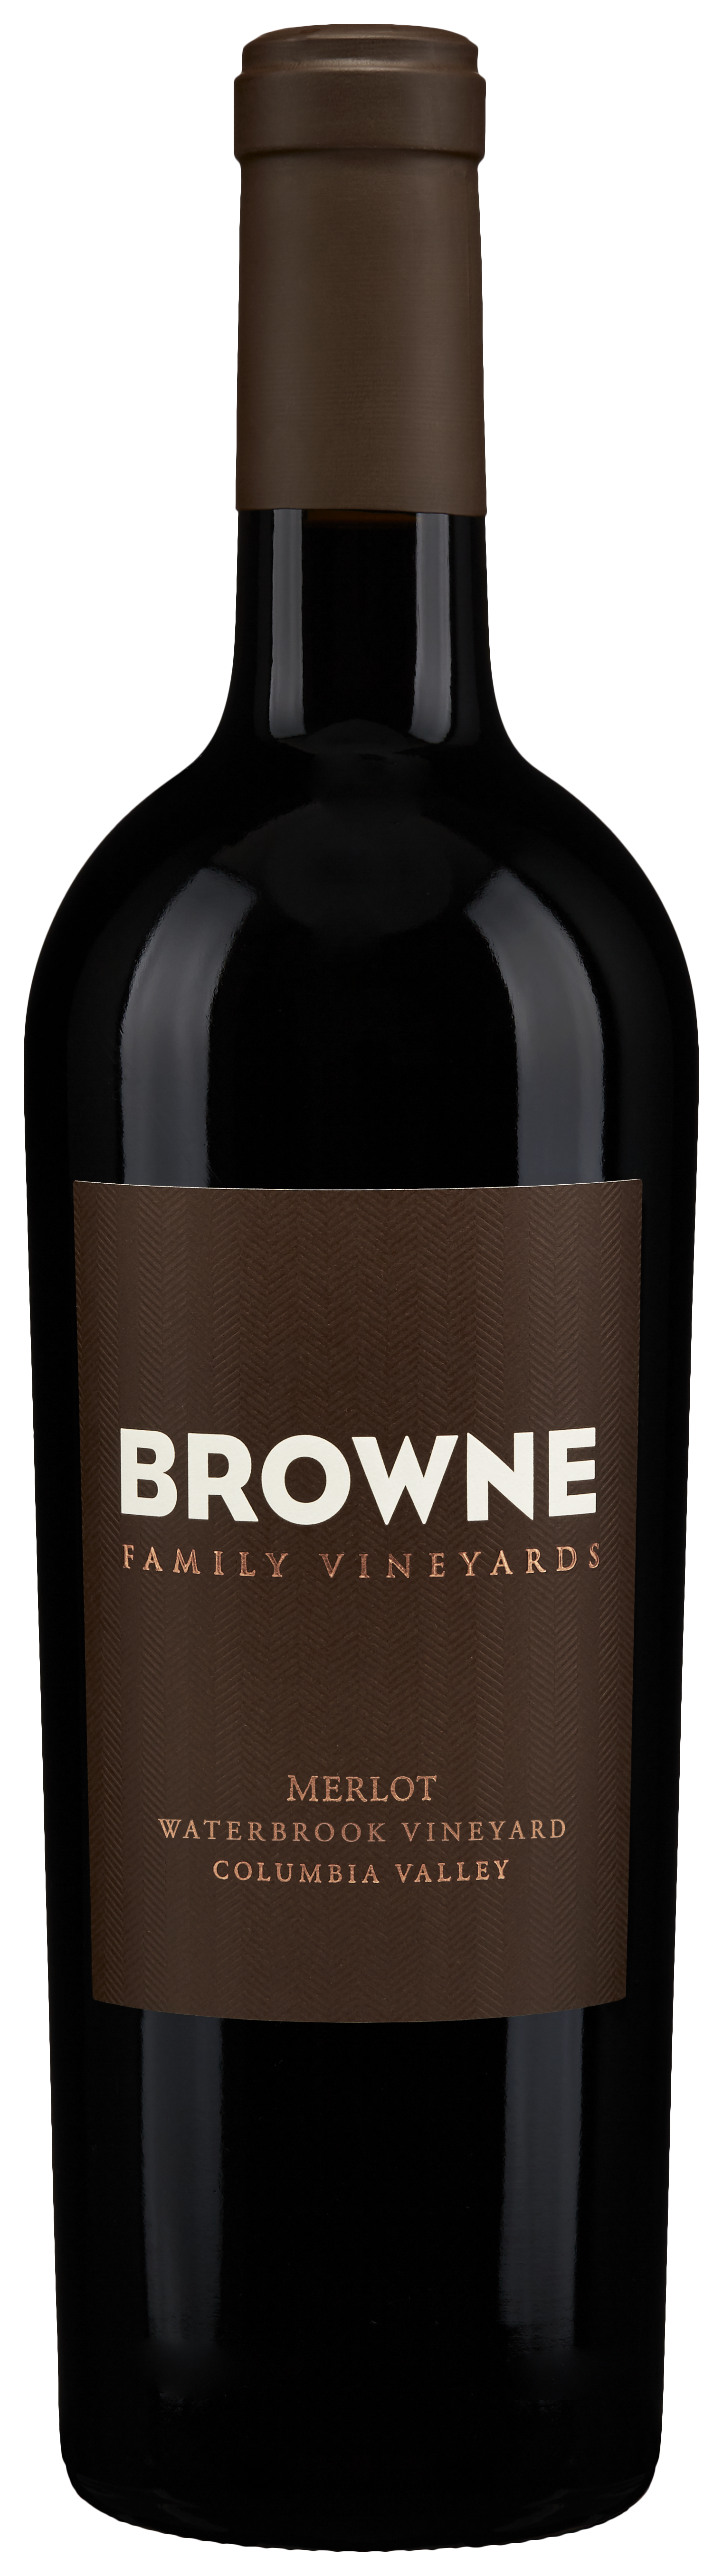 Browne Family Vineyards Estate Merlot Image